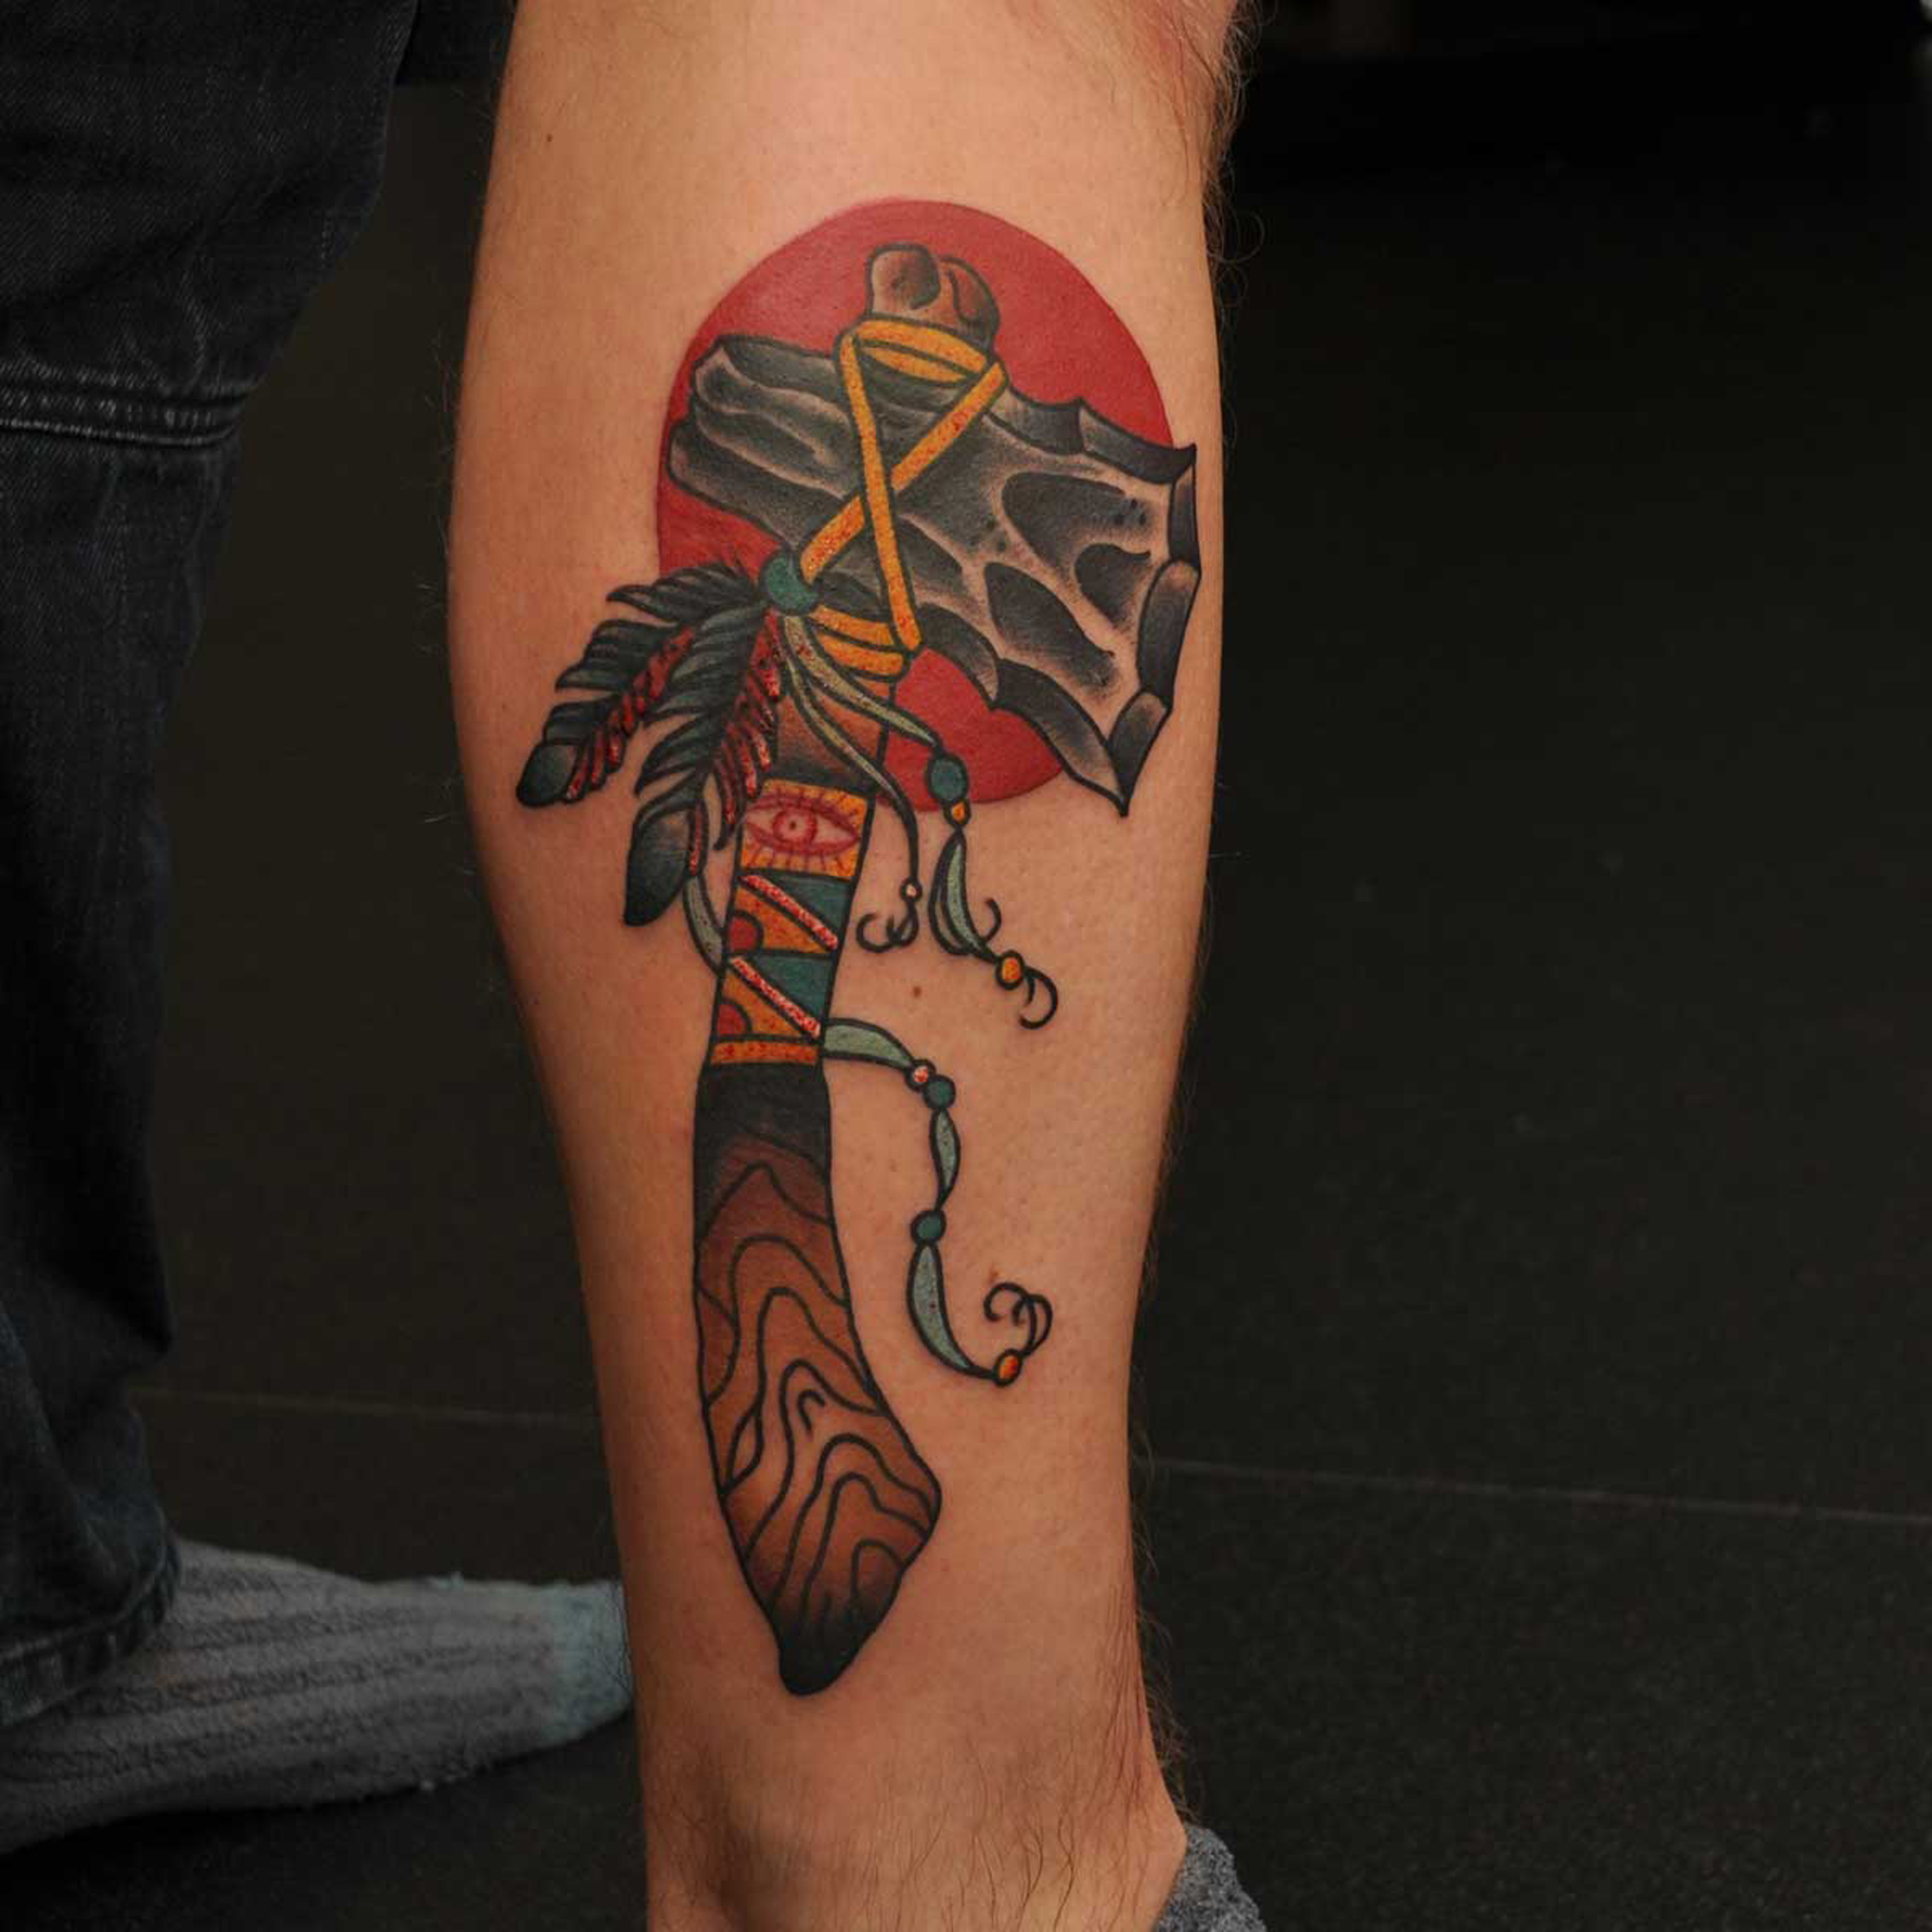 Tattoo Designs Tattoo Pictures: Tomahawk Tattoo Designs, Ideas And Meaning